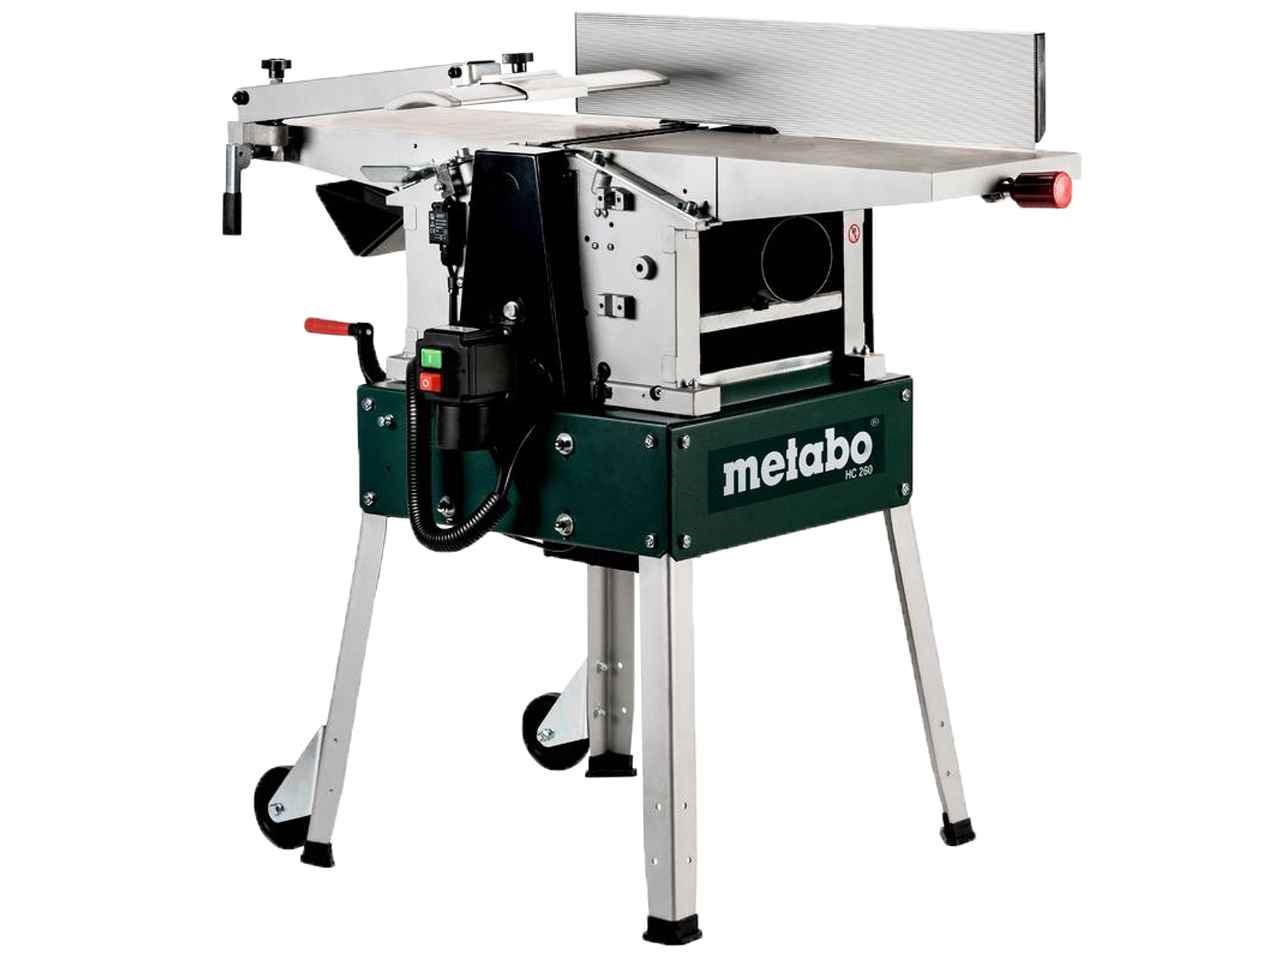 Metabo hc260c 240v planer and thicknesser with leg stand for Aspirateur 2000w